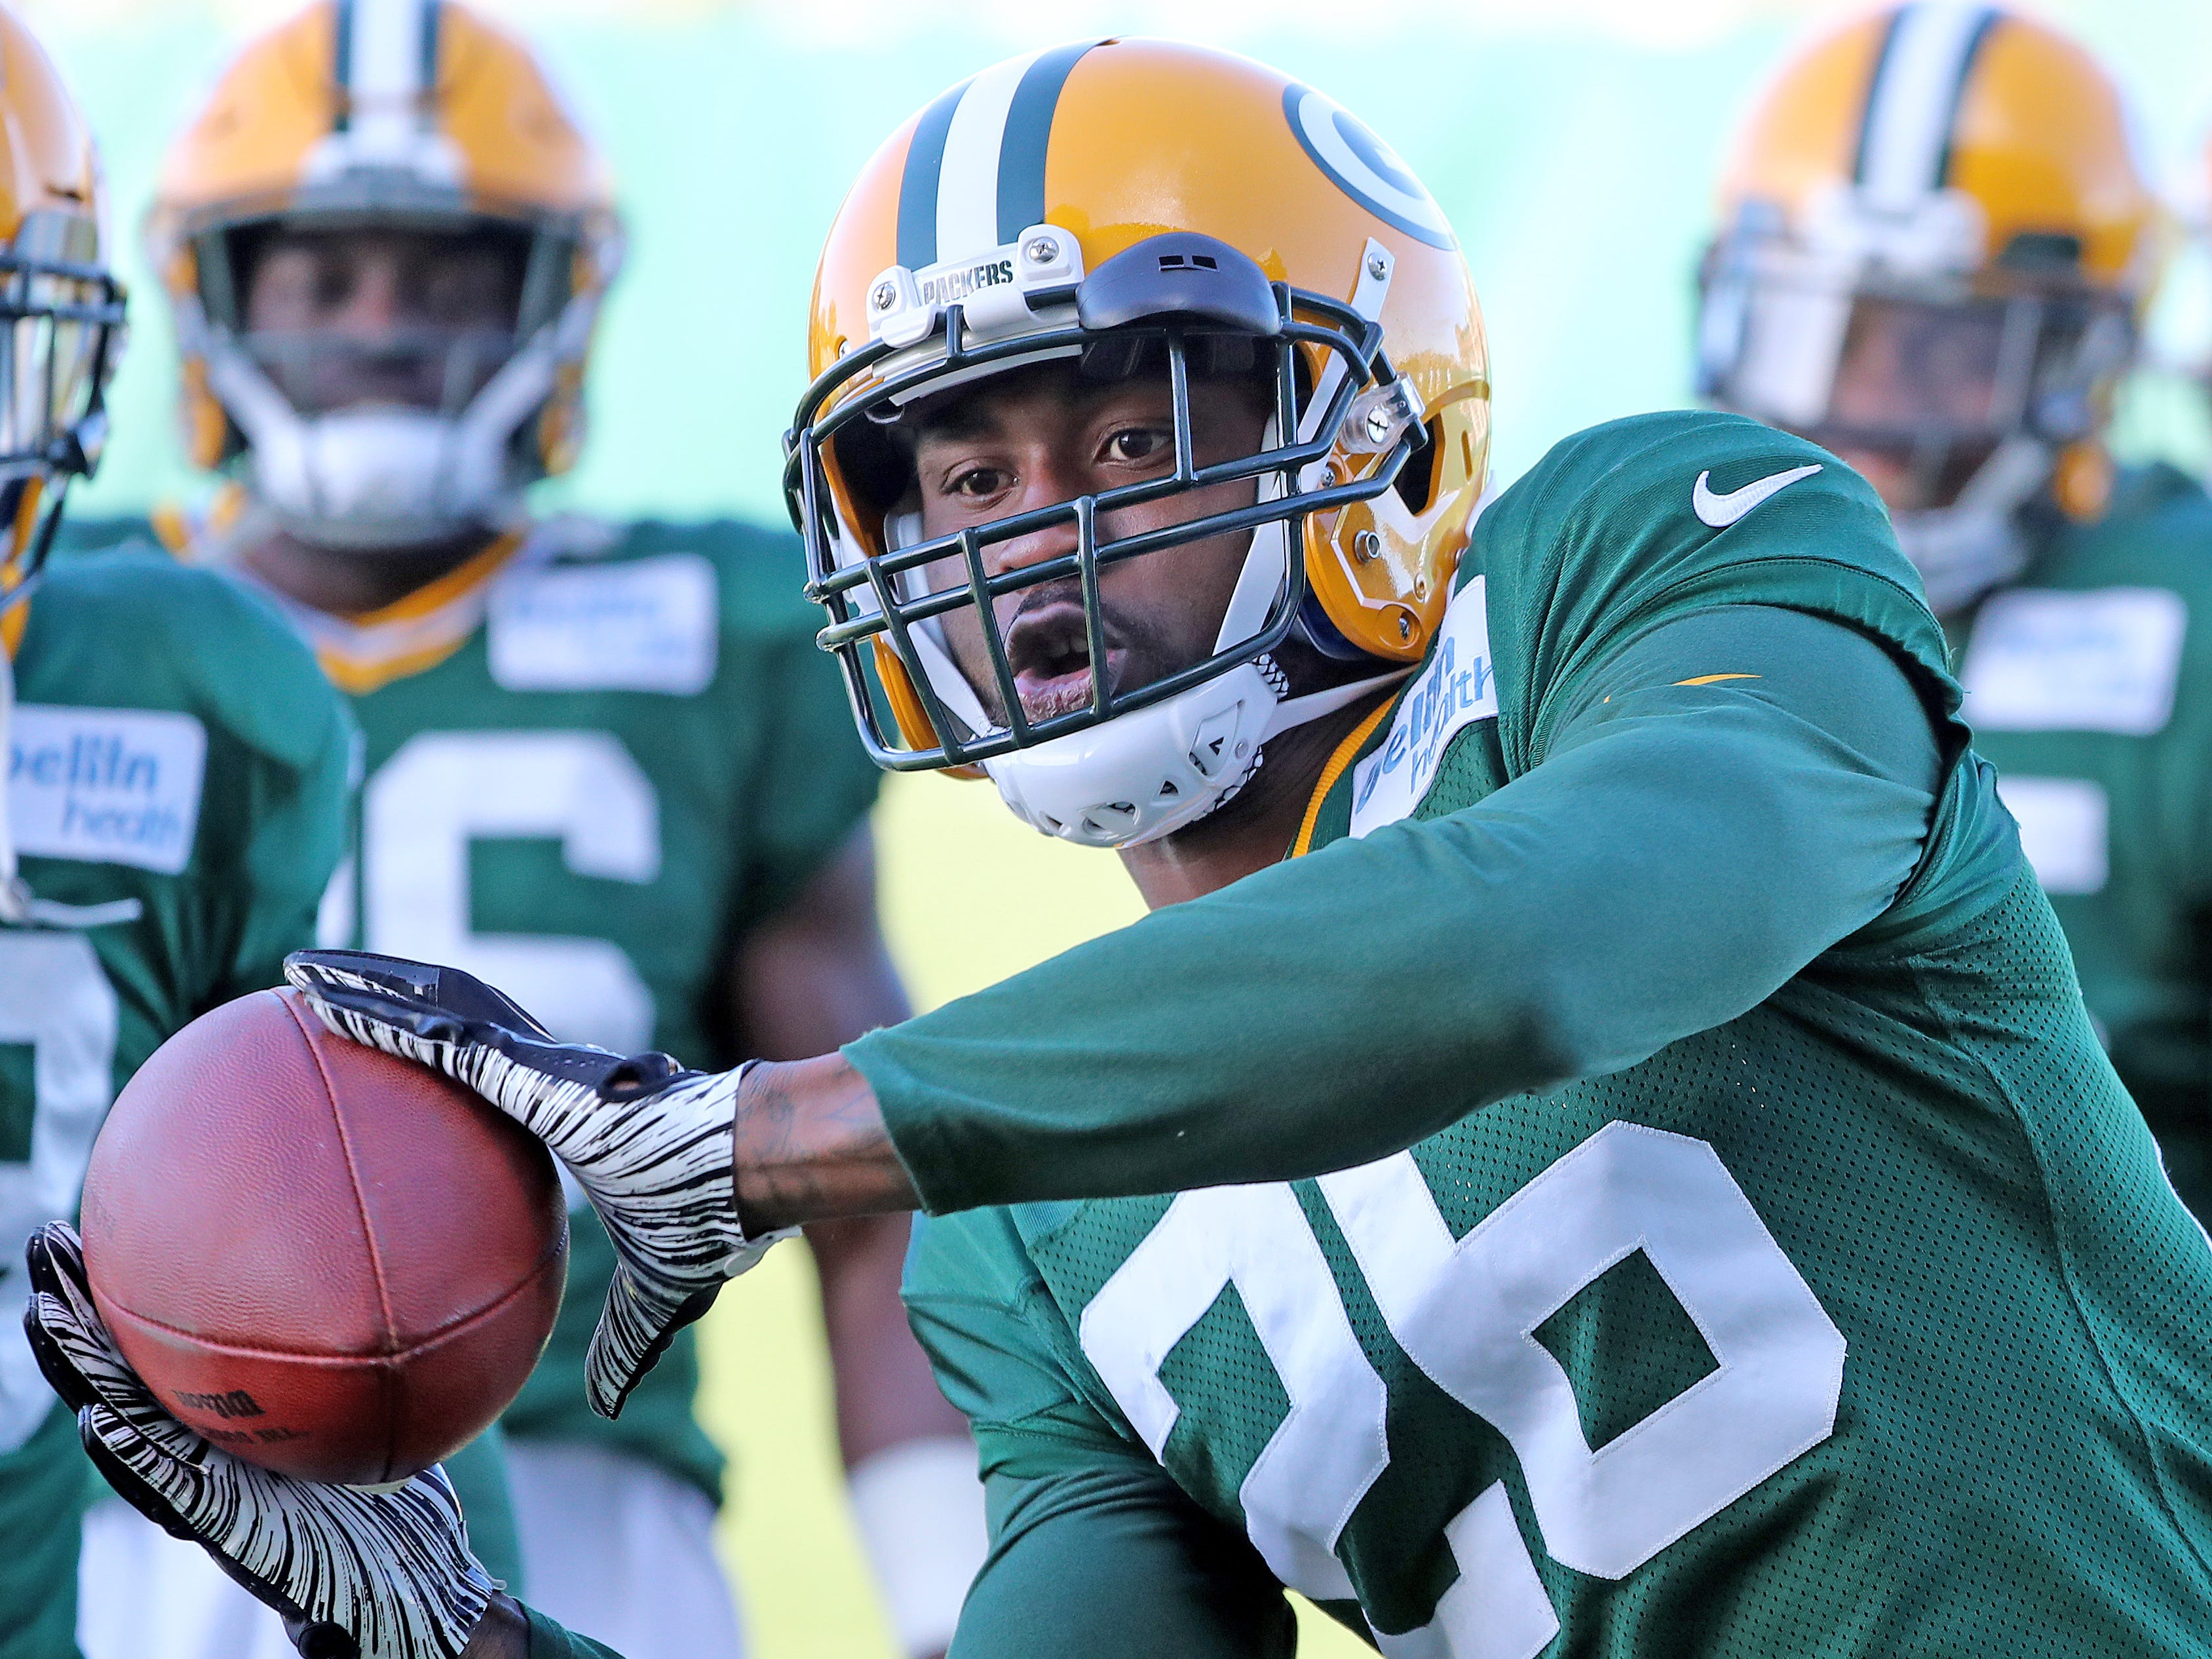 Green Bay Packers defensive back Bashaud Breeland (26) during practice on Clarke Hinkle Field Thursday, November 1, 2018 in Ashwaubenon, Wis.